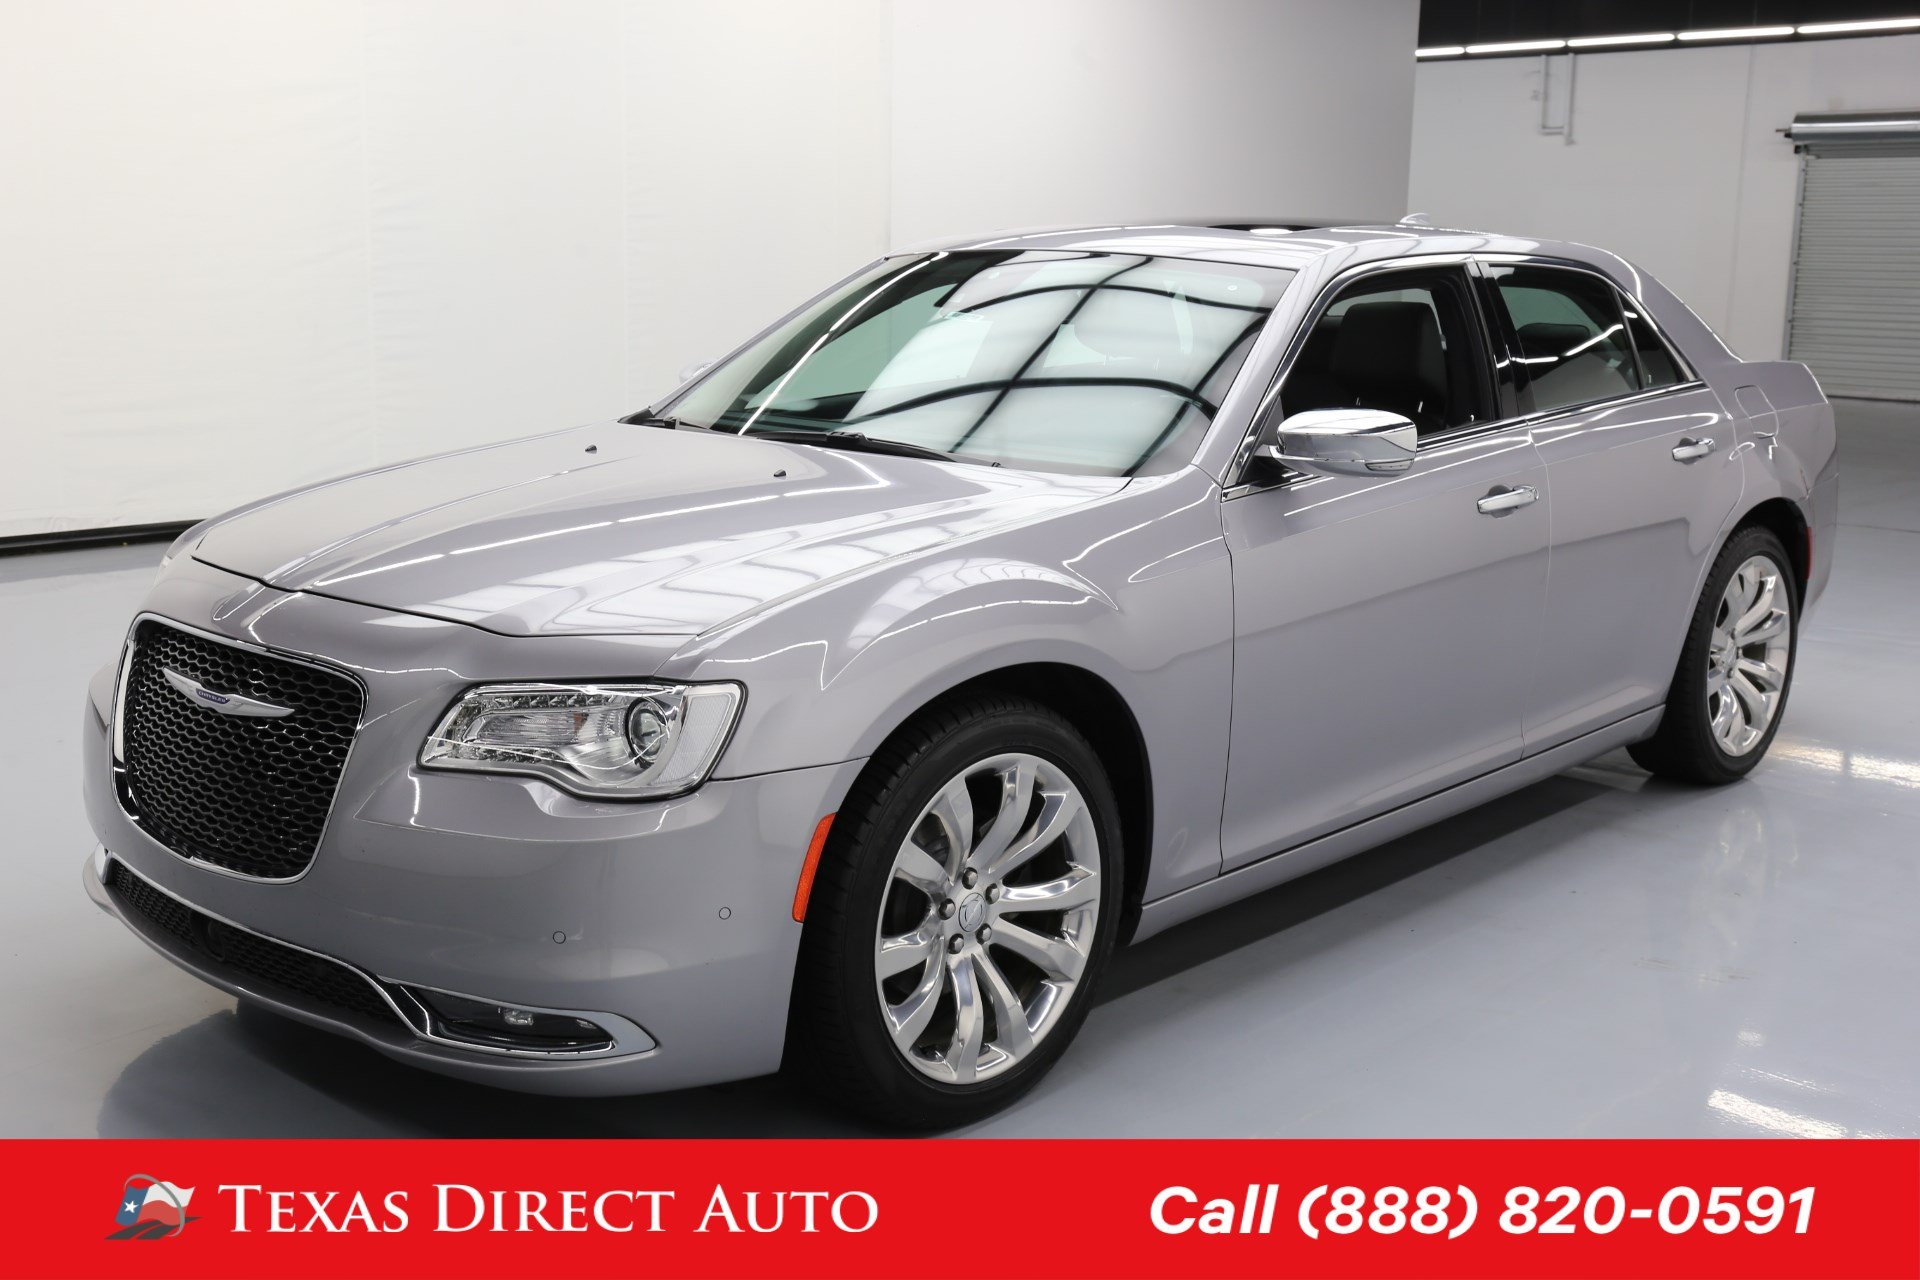 Cars for Sale Near Me Under 300 Beautiful Chrysler 300 for Sale In Huntsville Tx Autotrader